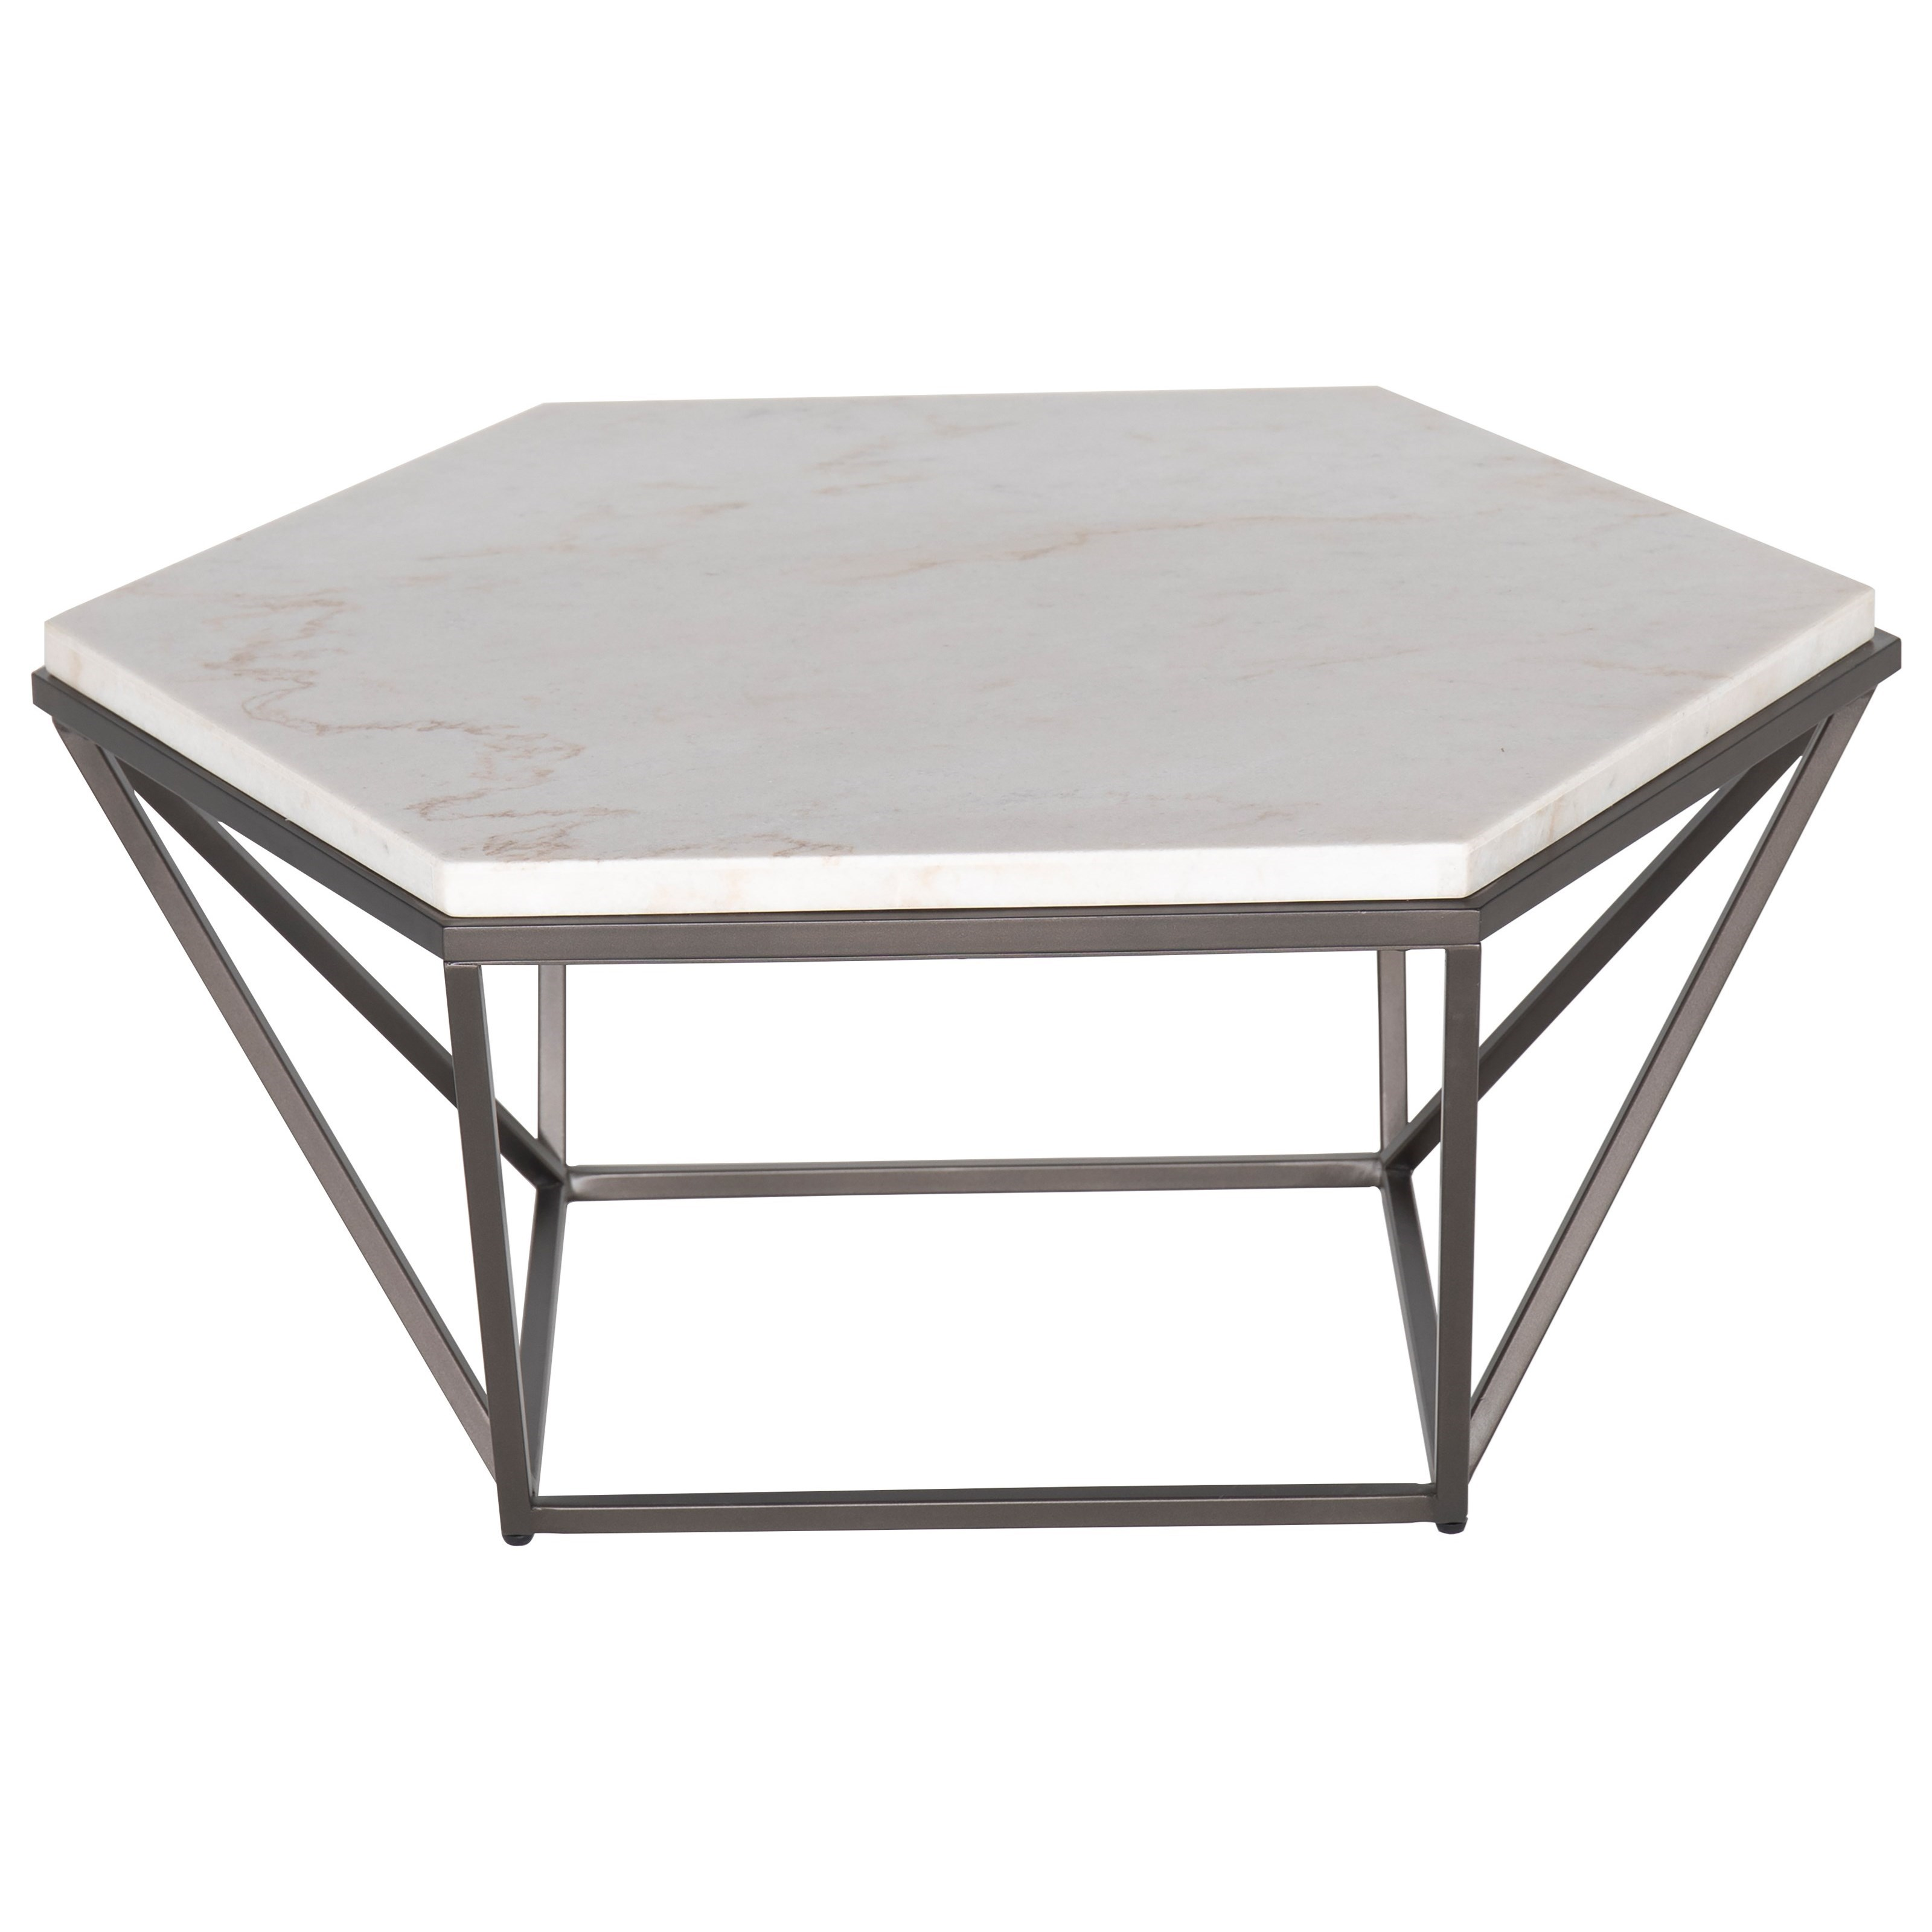 Corvus Cocktail Table by Steve Silver at Northeast Factory Direct